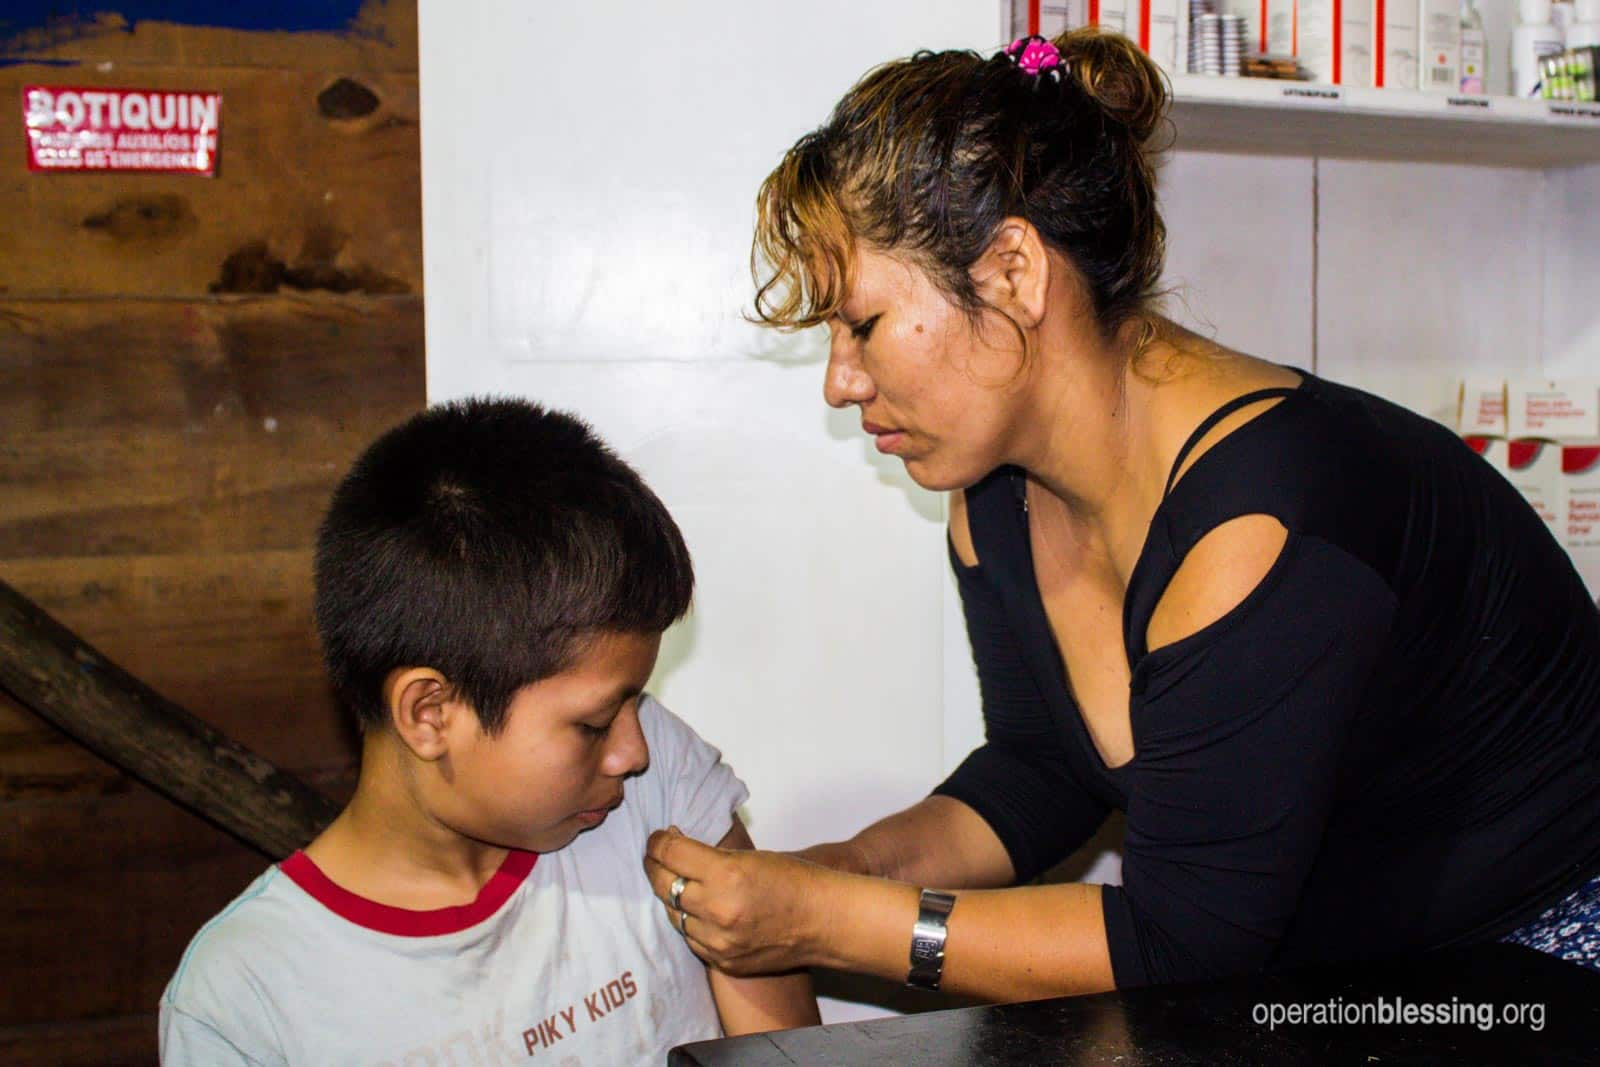 Lizeth tends to a little boy's arm.